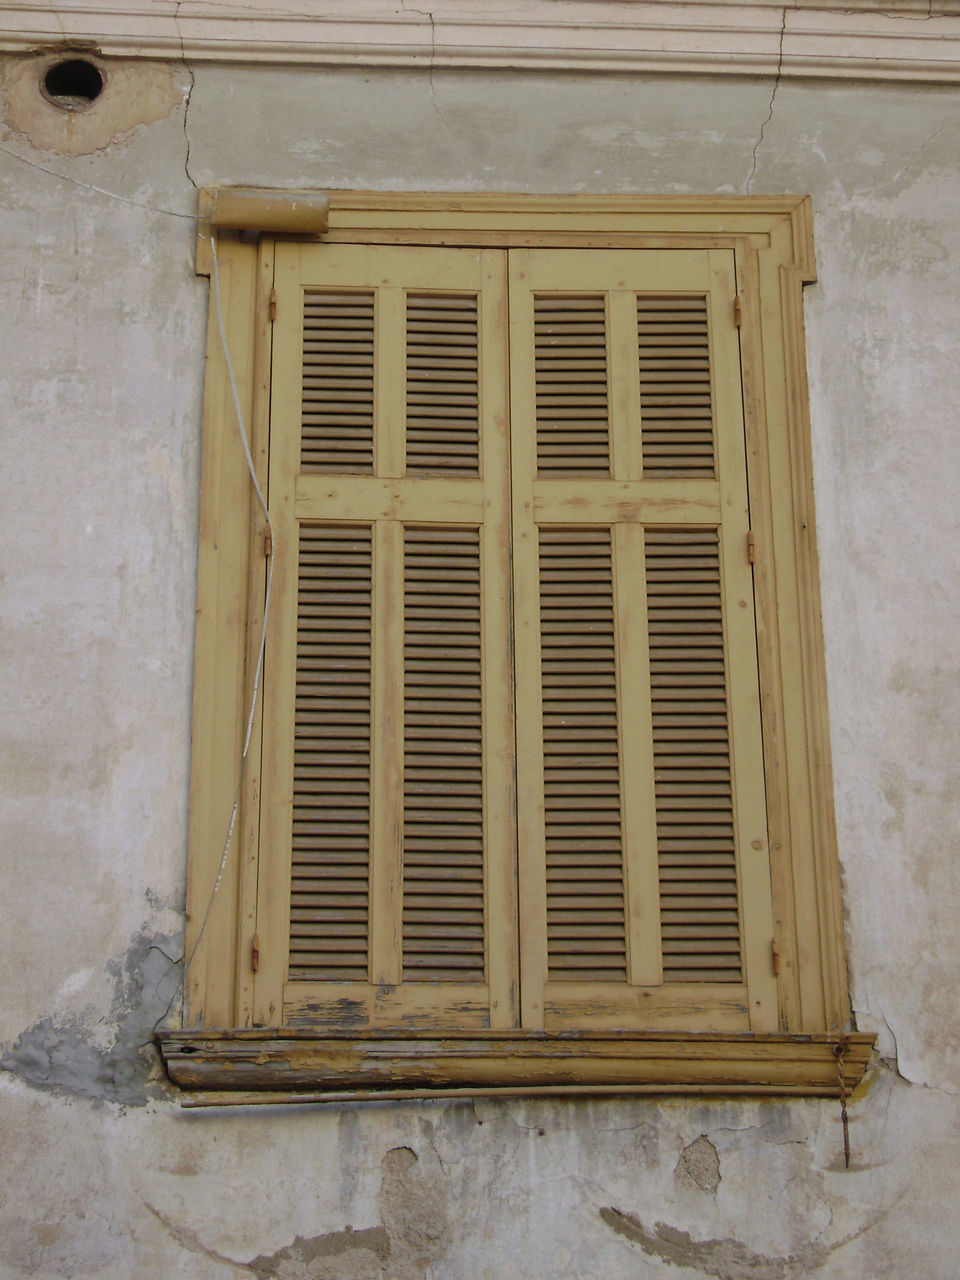 window, air duct, architecture, built structure, no people, air conditioner, day, building exterior, indoors, close-up